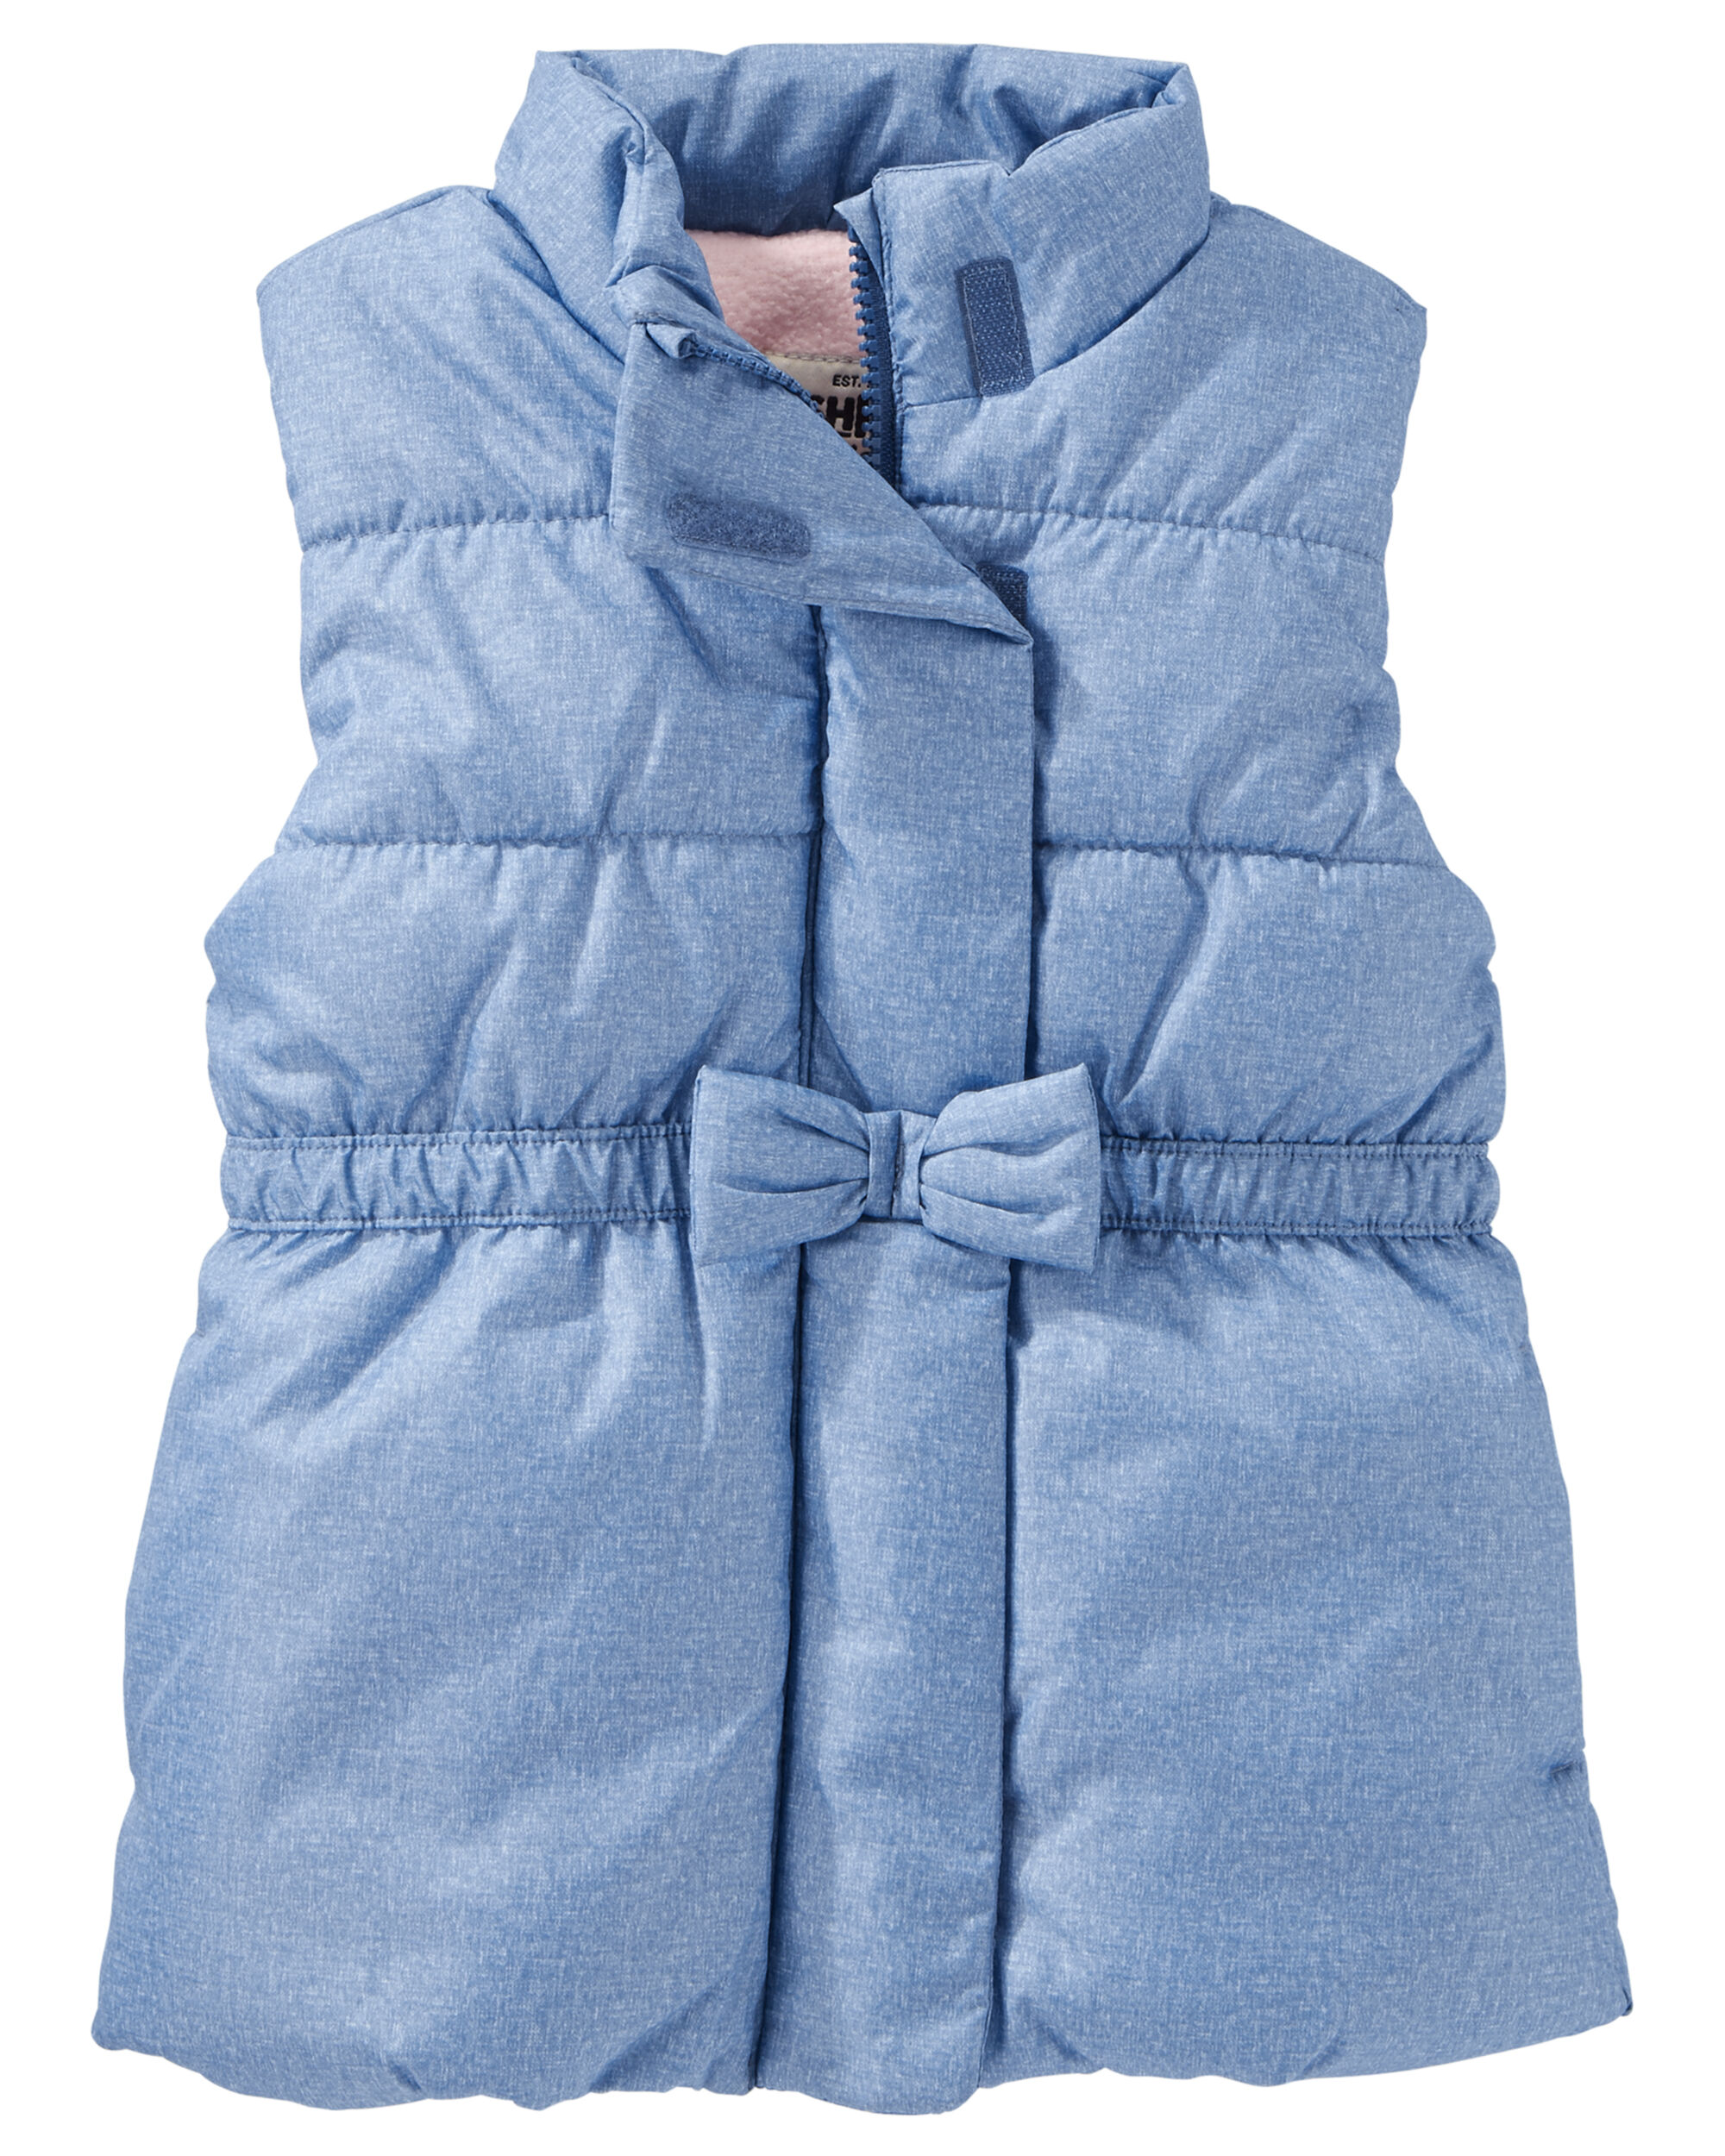 Baby Girl Winter Clothes & Accessories | Oshkosh | Free Shipping